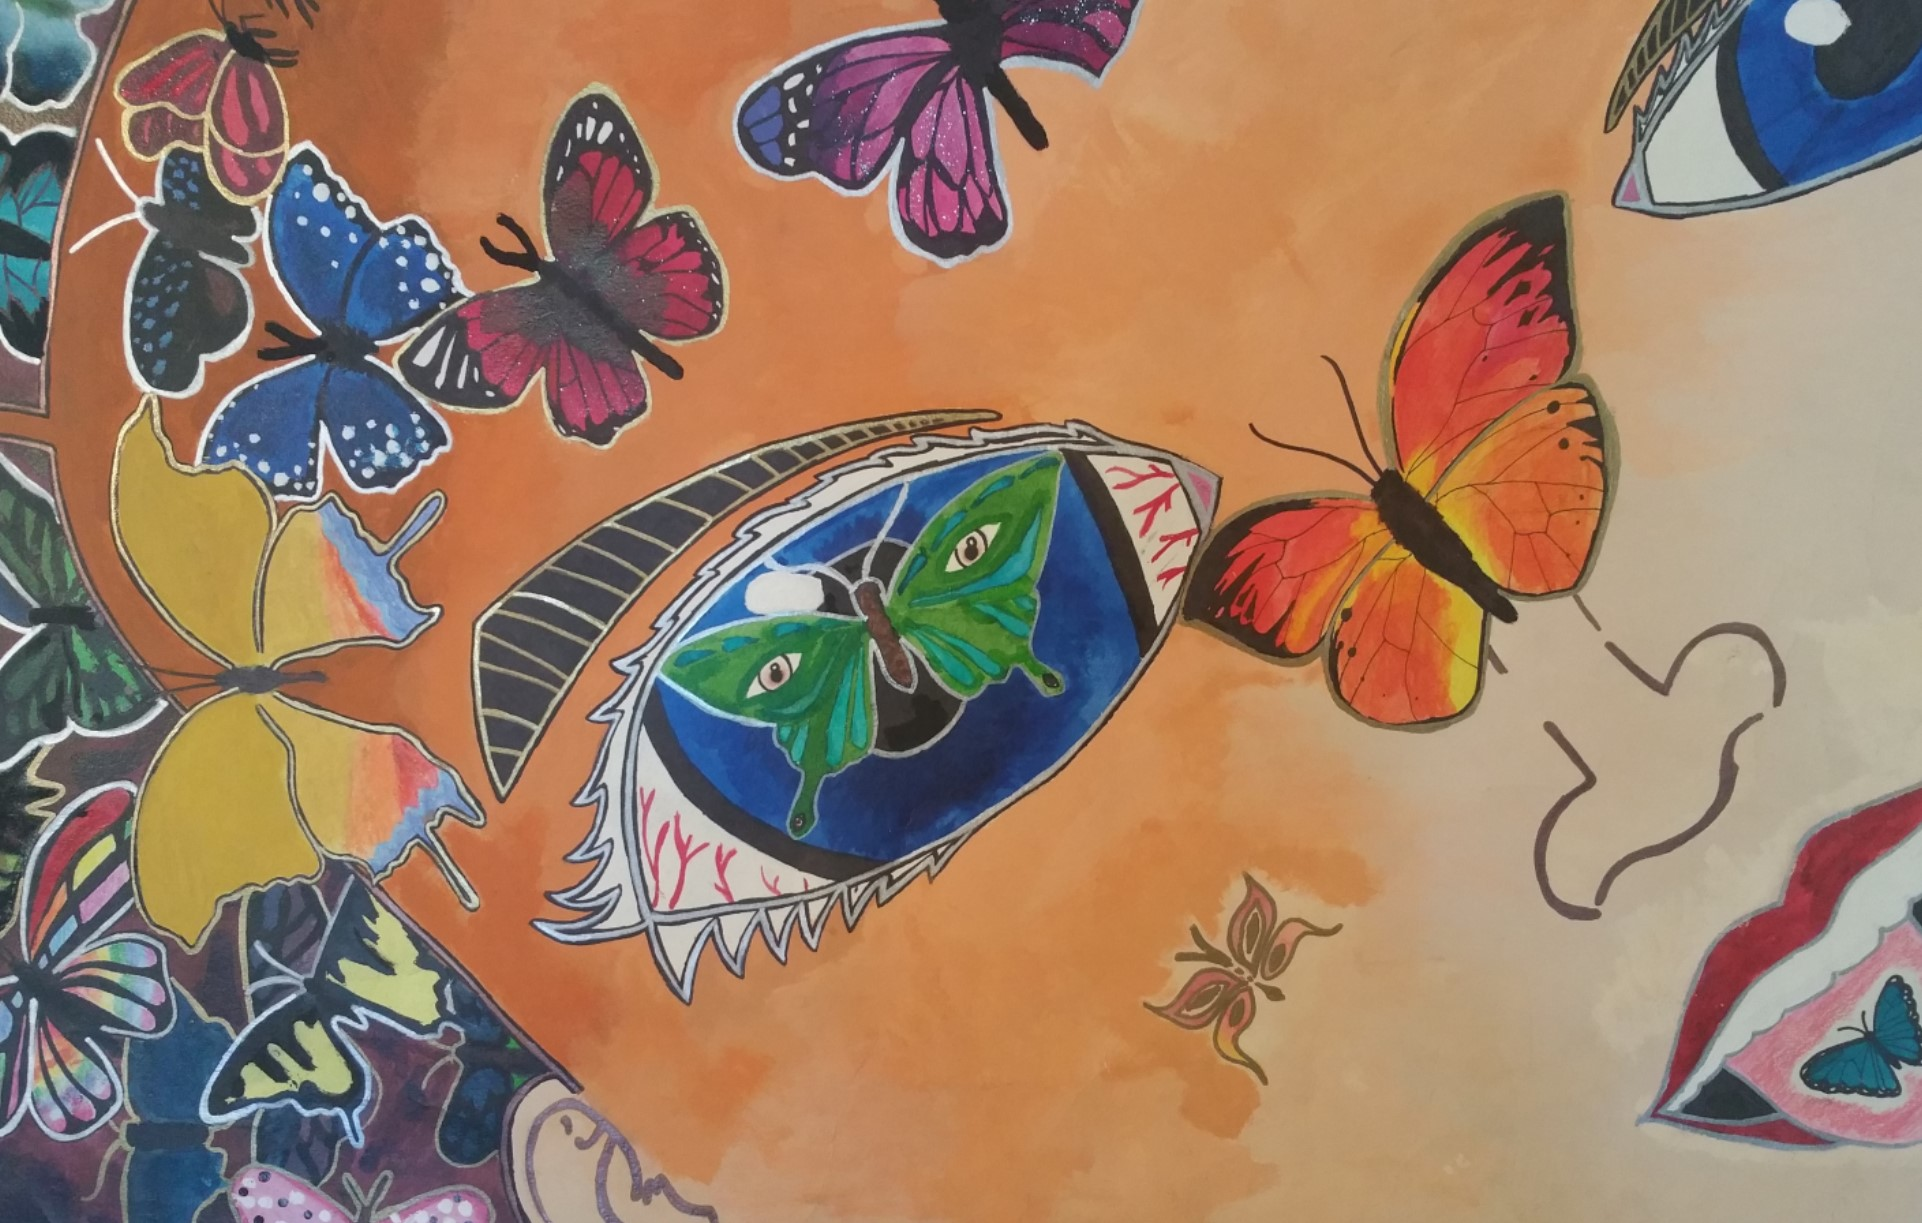 Watercolor art galleries in houston - Each Month The Houston Museum Of Natural Science At Sugar Land Works With A Different Local School To Showcase The Talent Of Our Local Kids